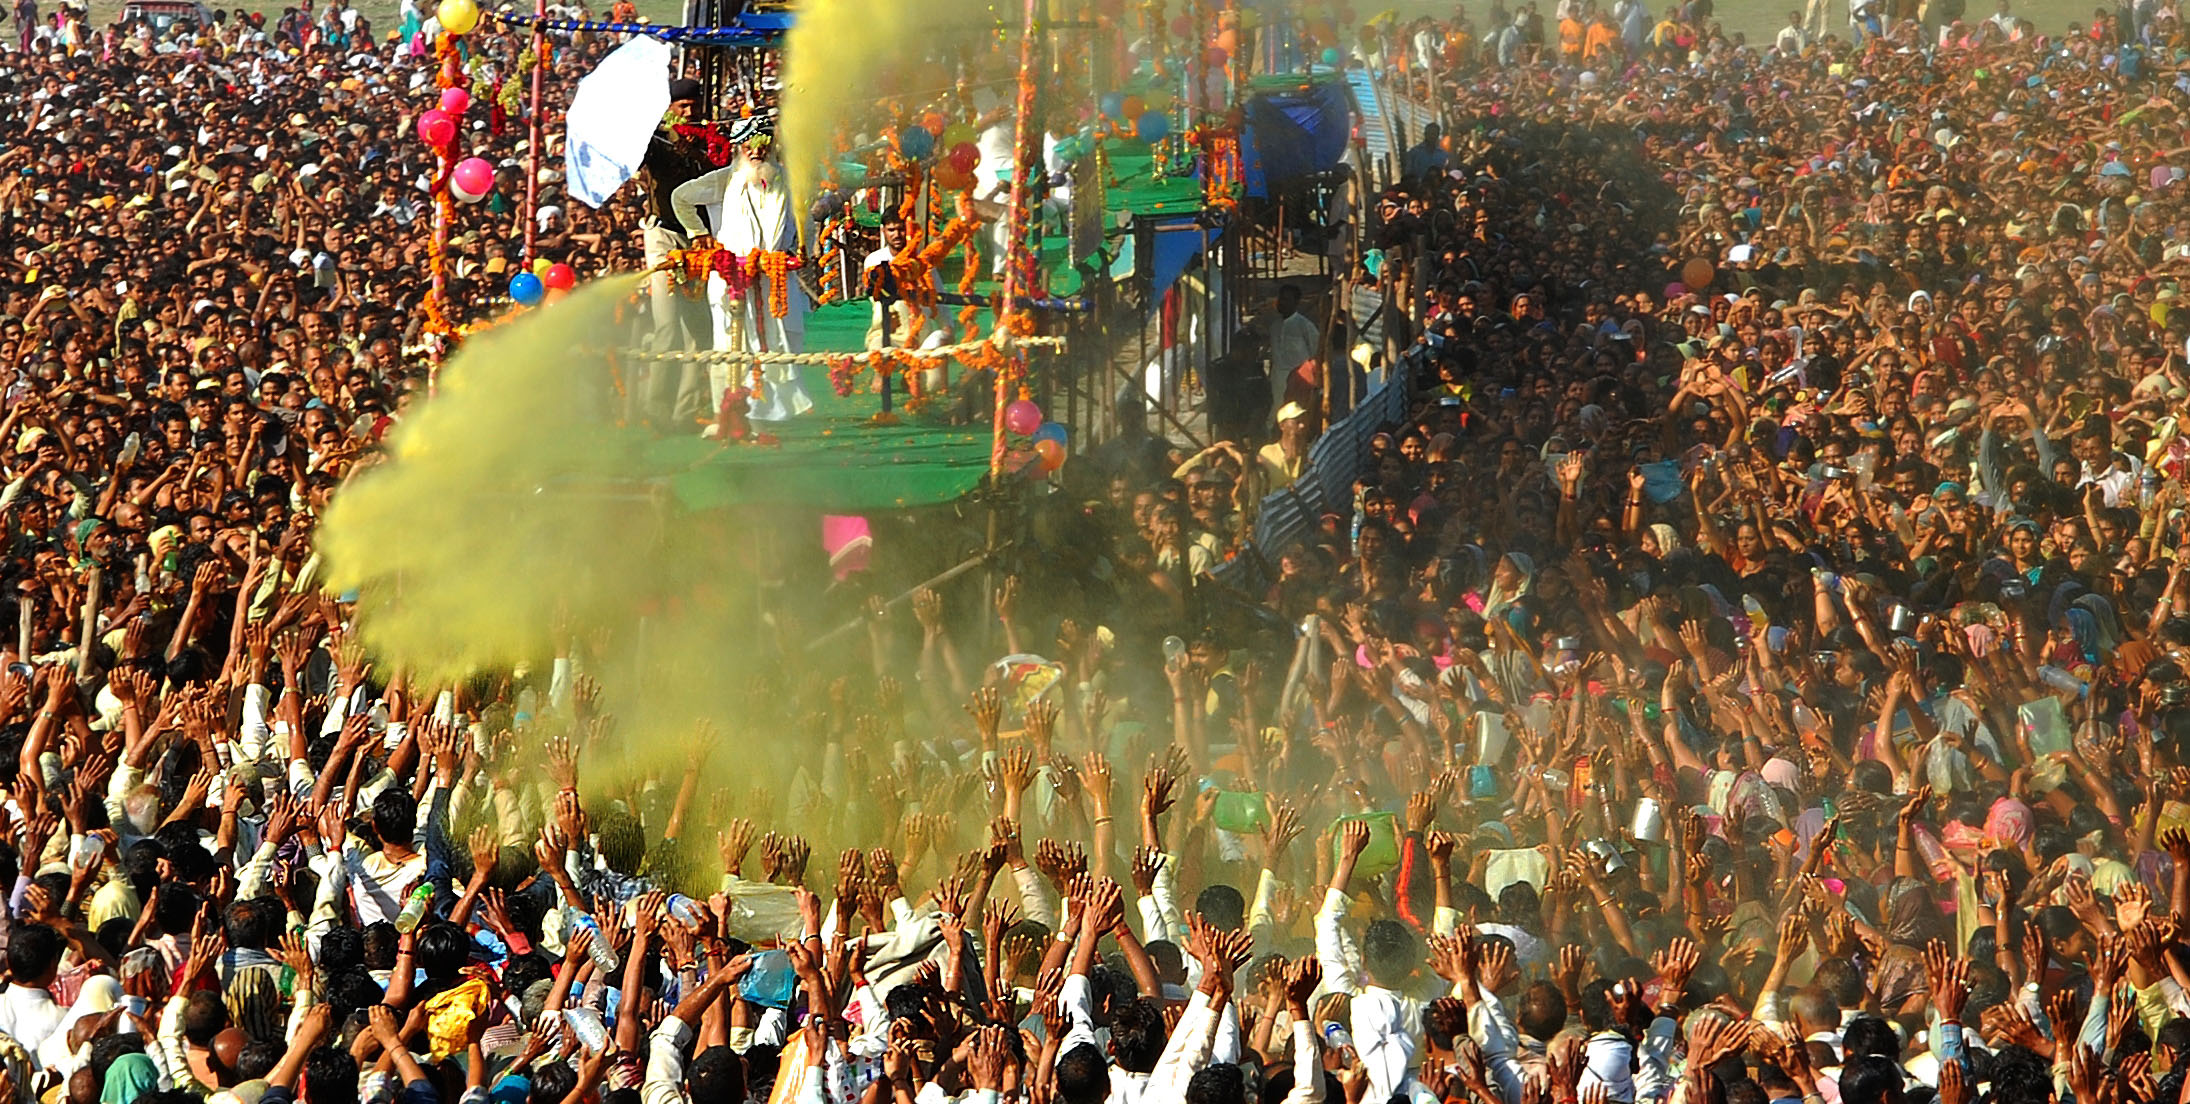 Sant Shri Asaram Bapu sprinkling colored water on his thousands of followers as part of Holi celebrations in Kumbh Mela on March 9, 2013 in Allahabad, India.